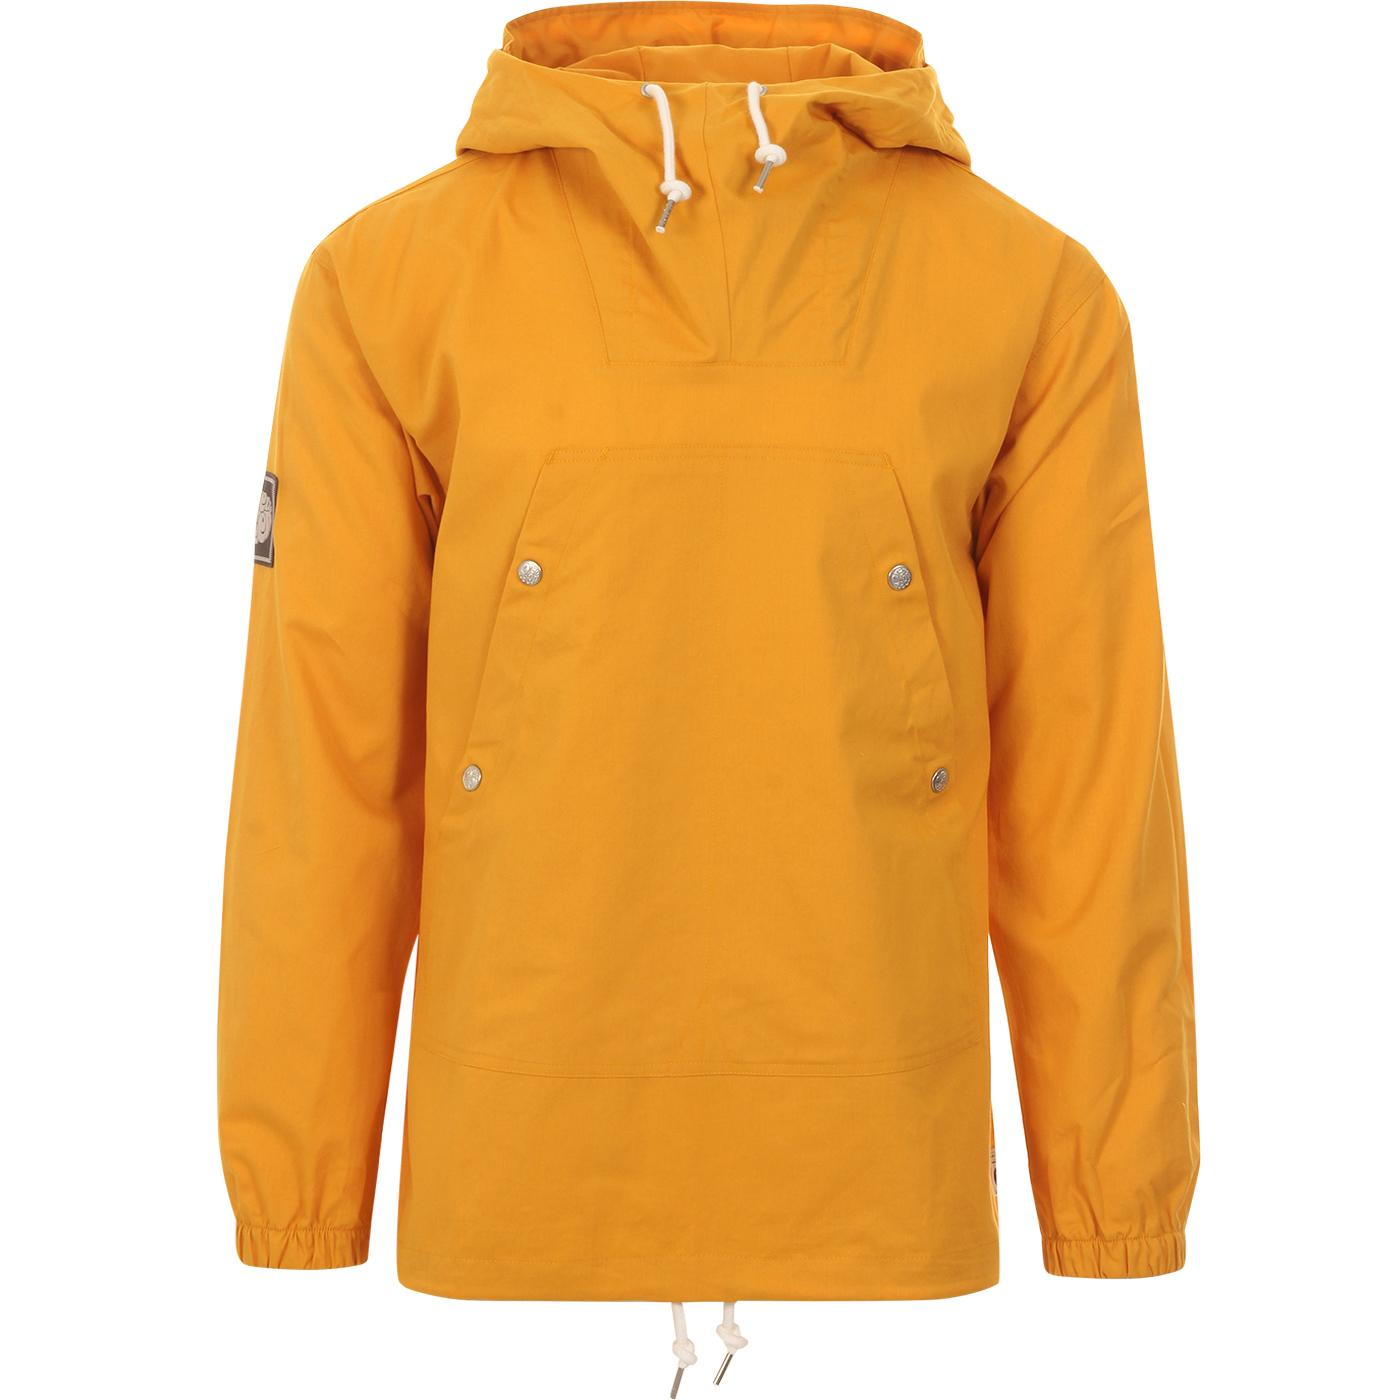 G20Q2MUOUT038 cotton overhead jacket orange